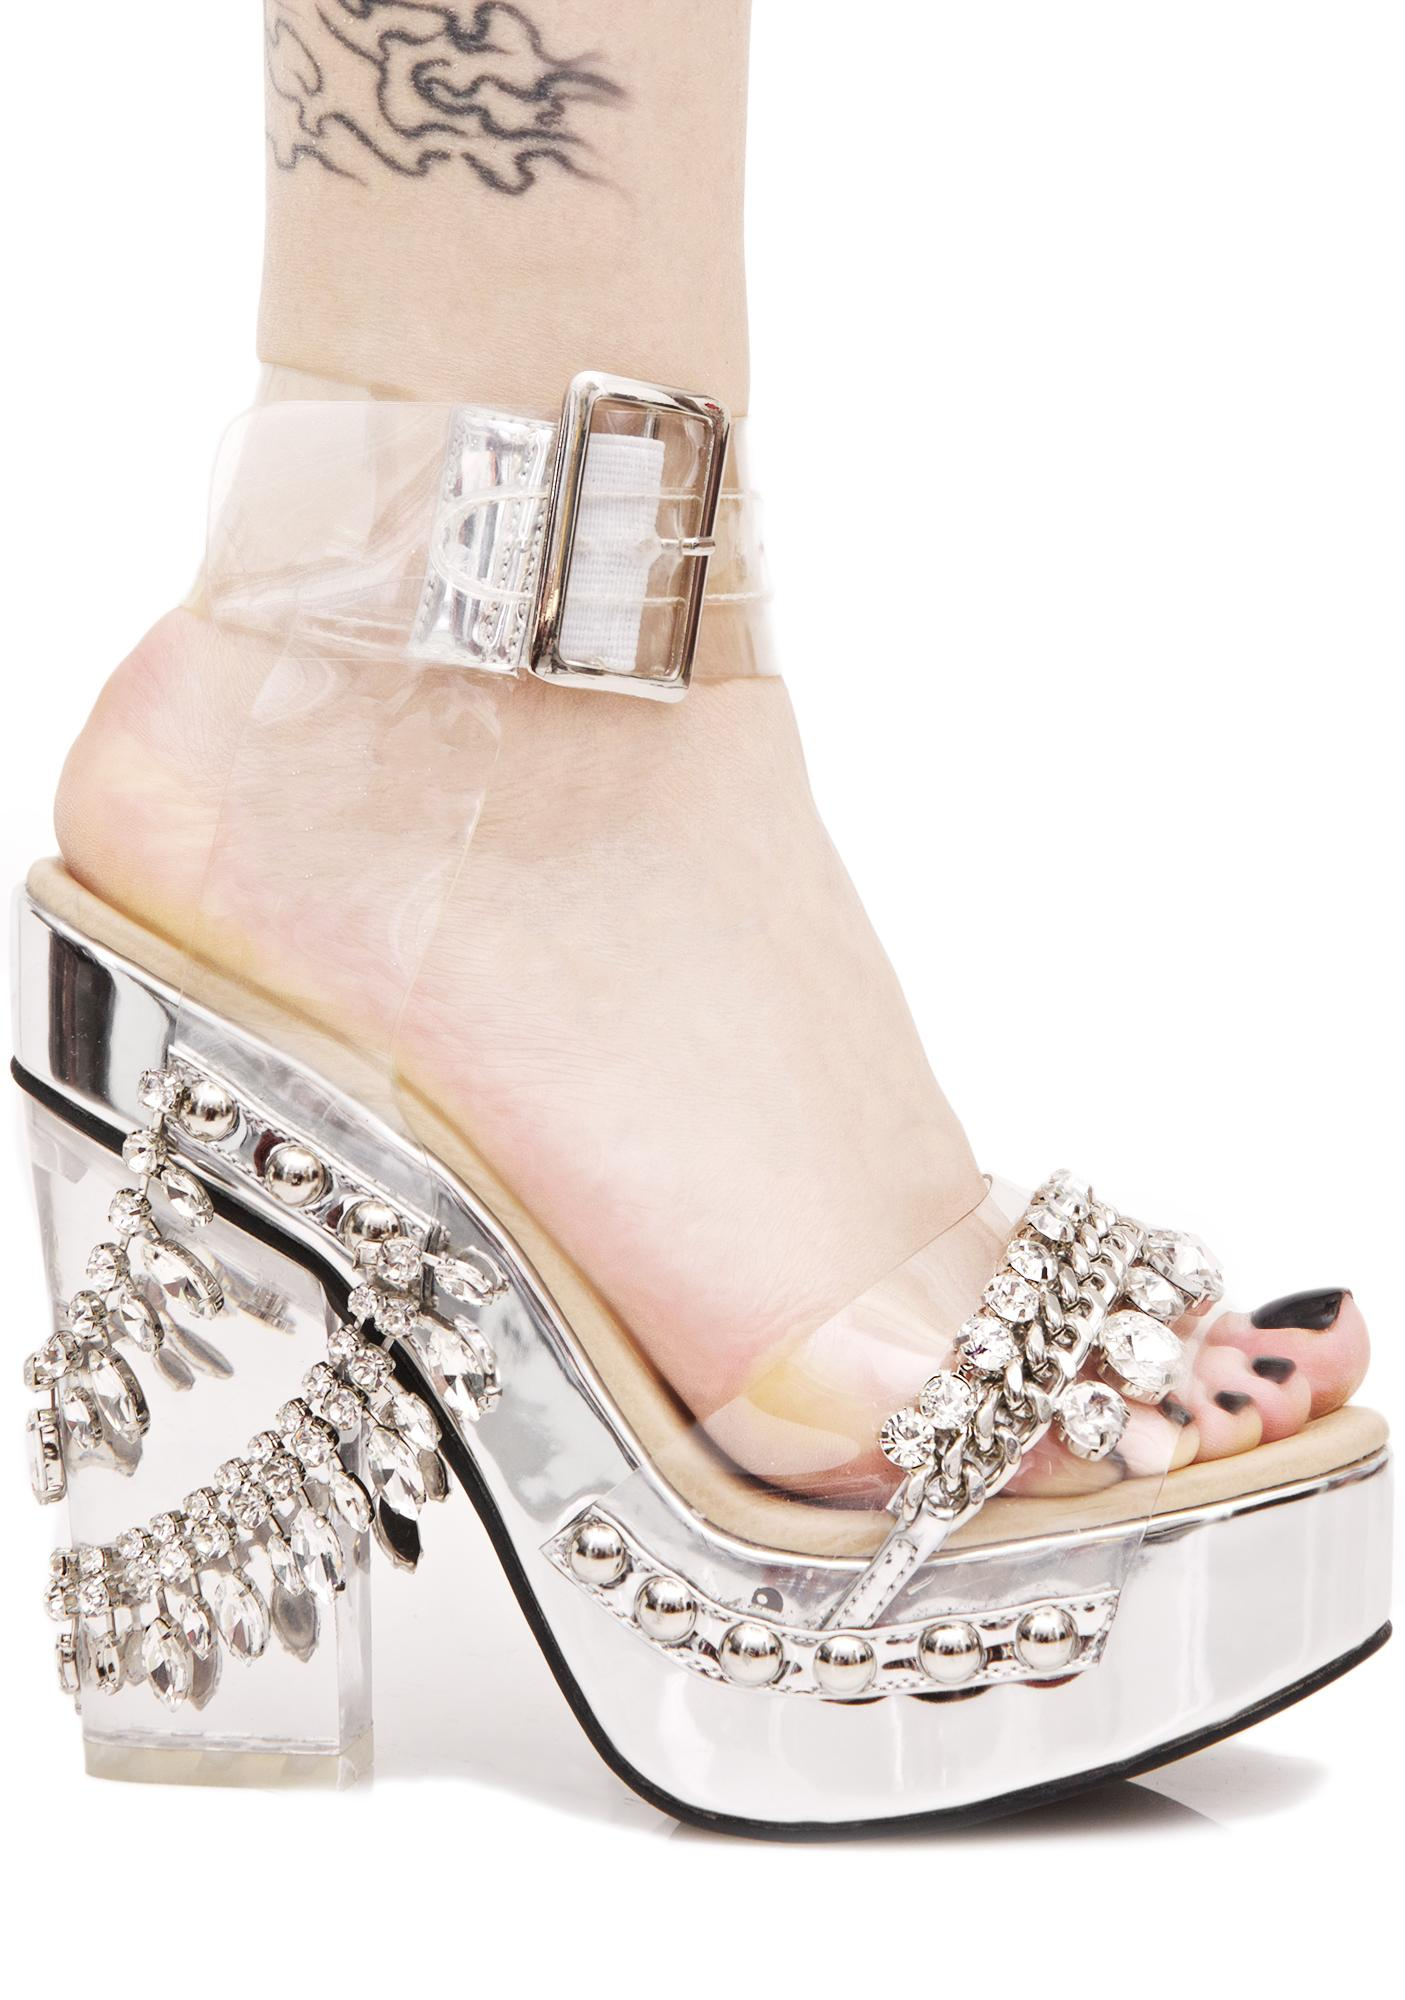 0c67fa3f96bb Sugar Thrillz Melrose Crystallized Platforms